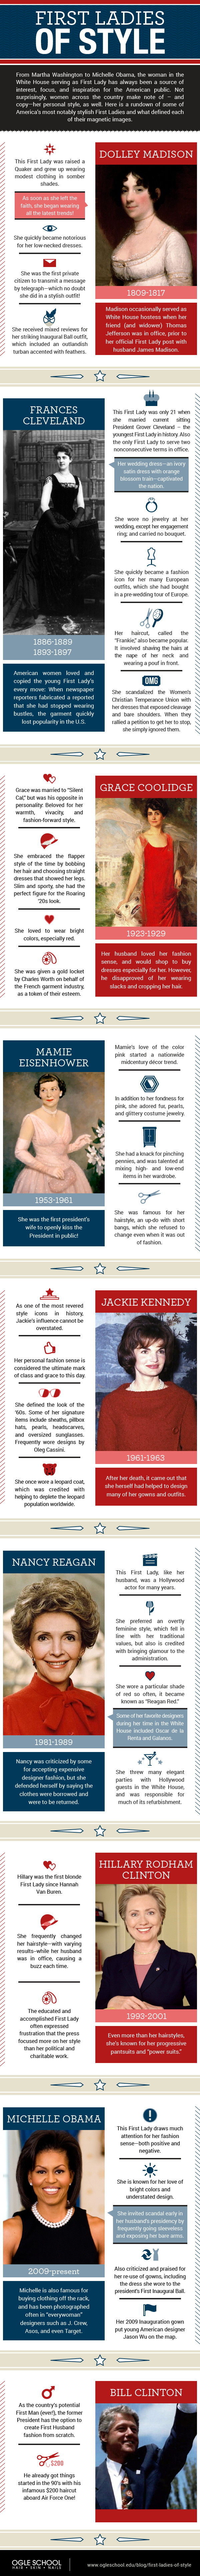 First Ladies of Style #infographic